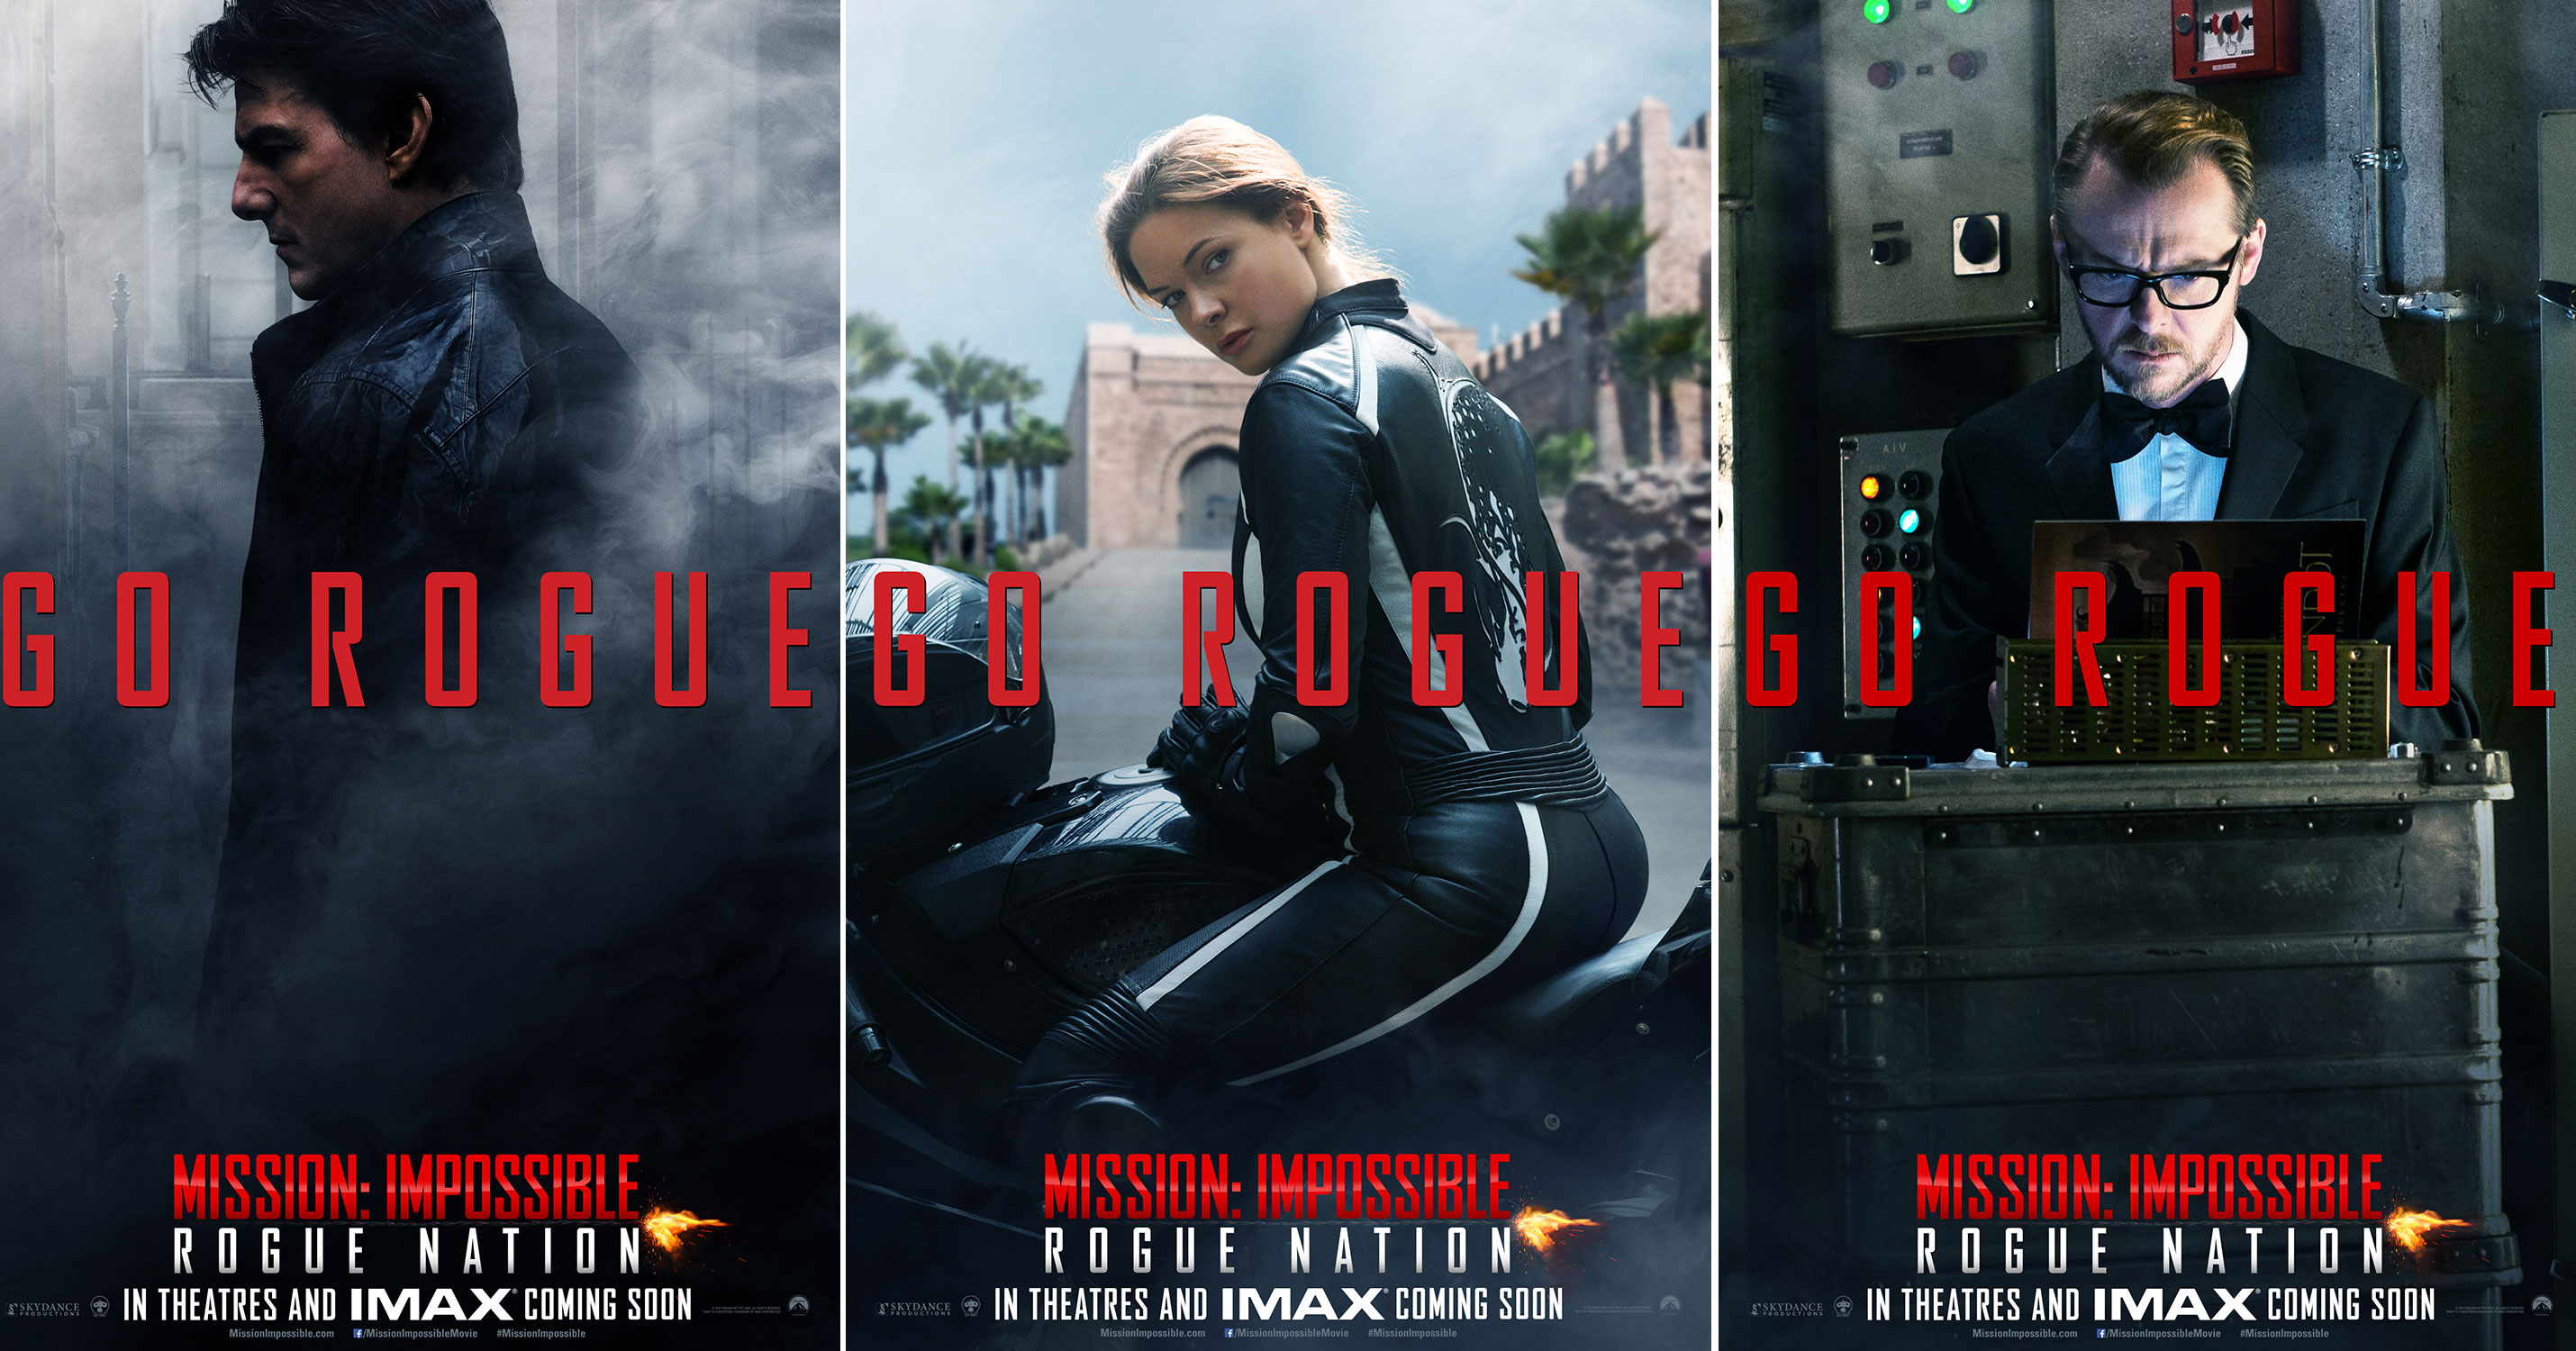 Simon Pegg has strong words for the Mission: Impossible – Rogue Nation posters